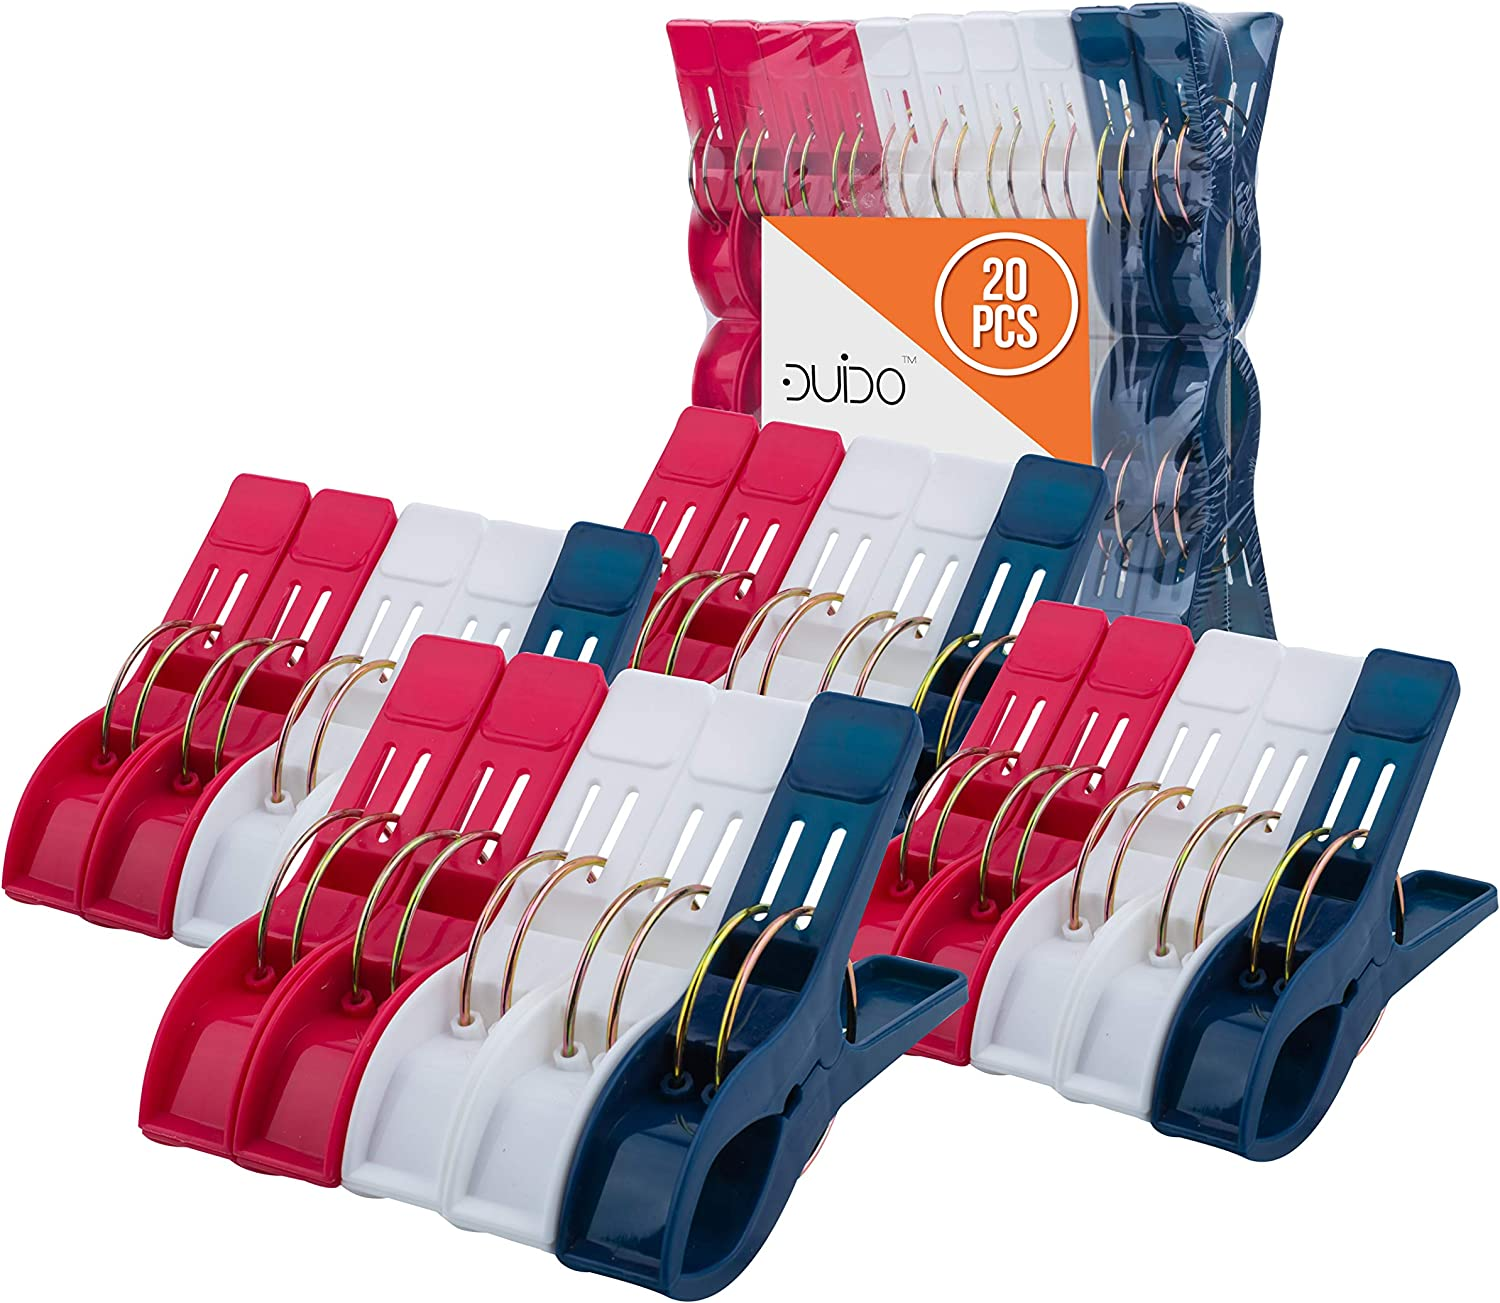 Beach Chair Towel Clips Clamps - 20 Pack Pool Towel Holder and Large Plastic Clamp